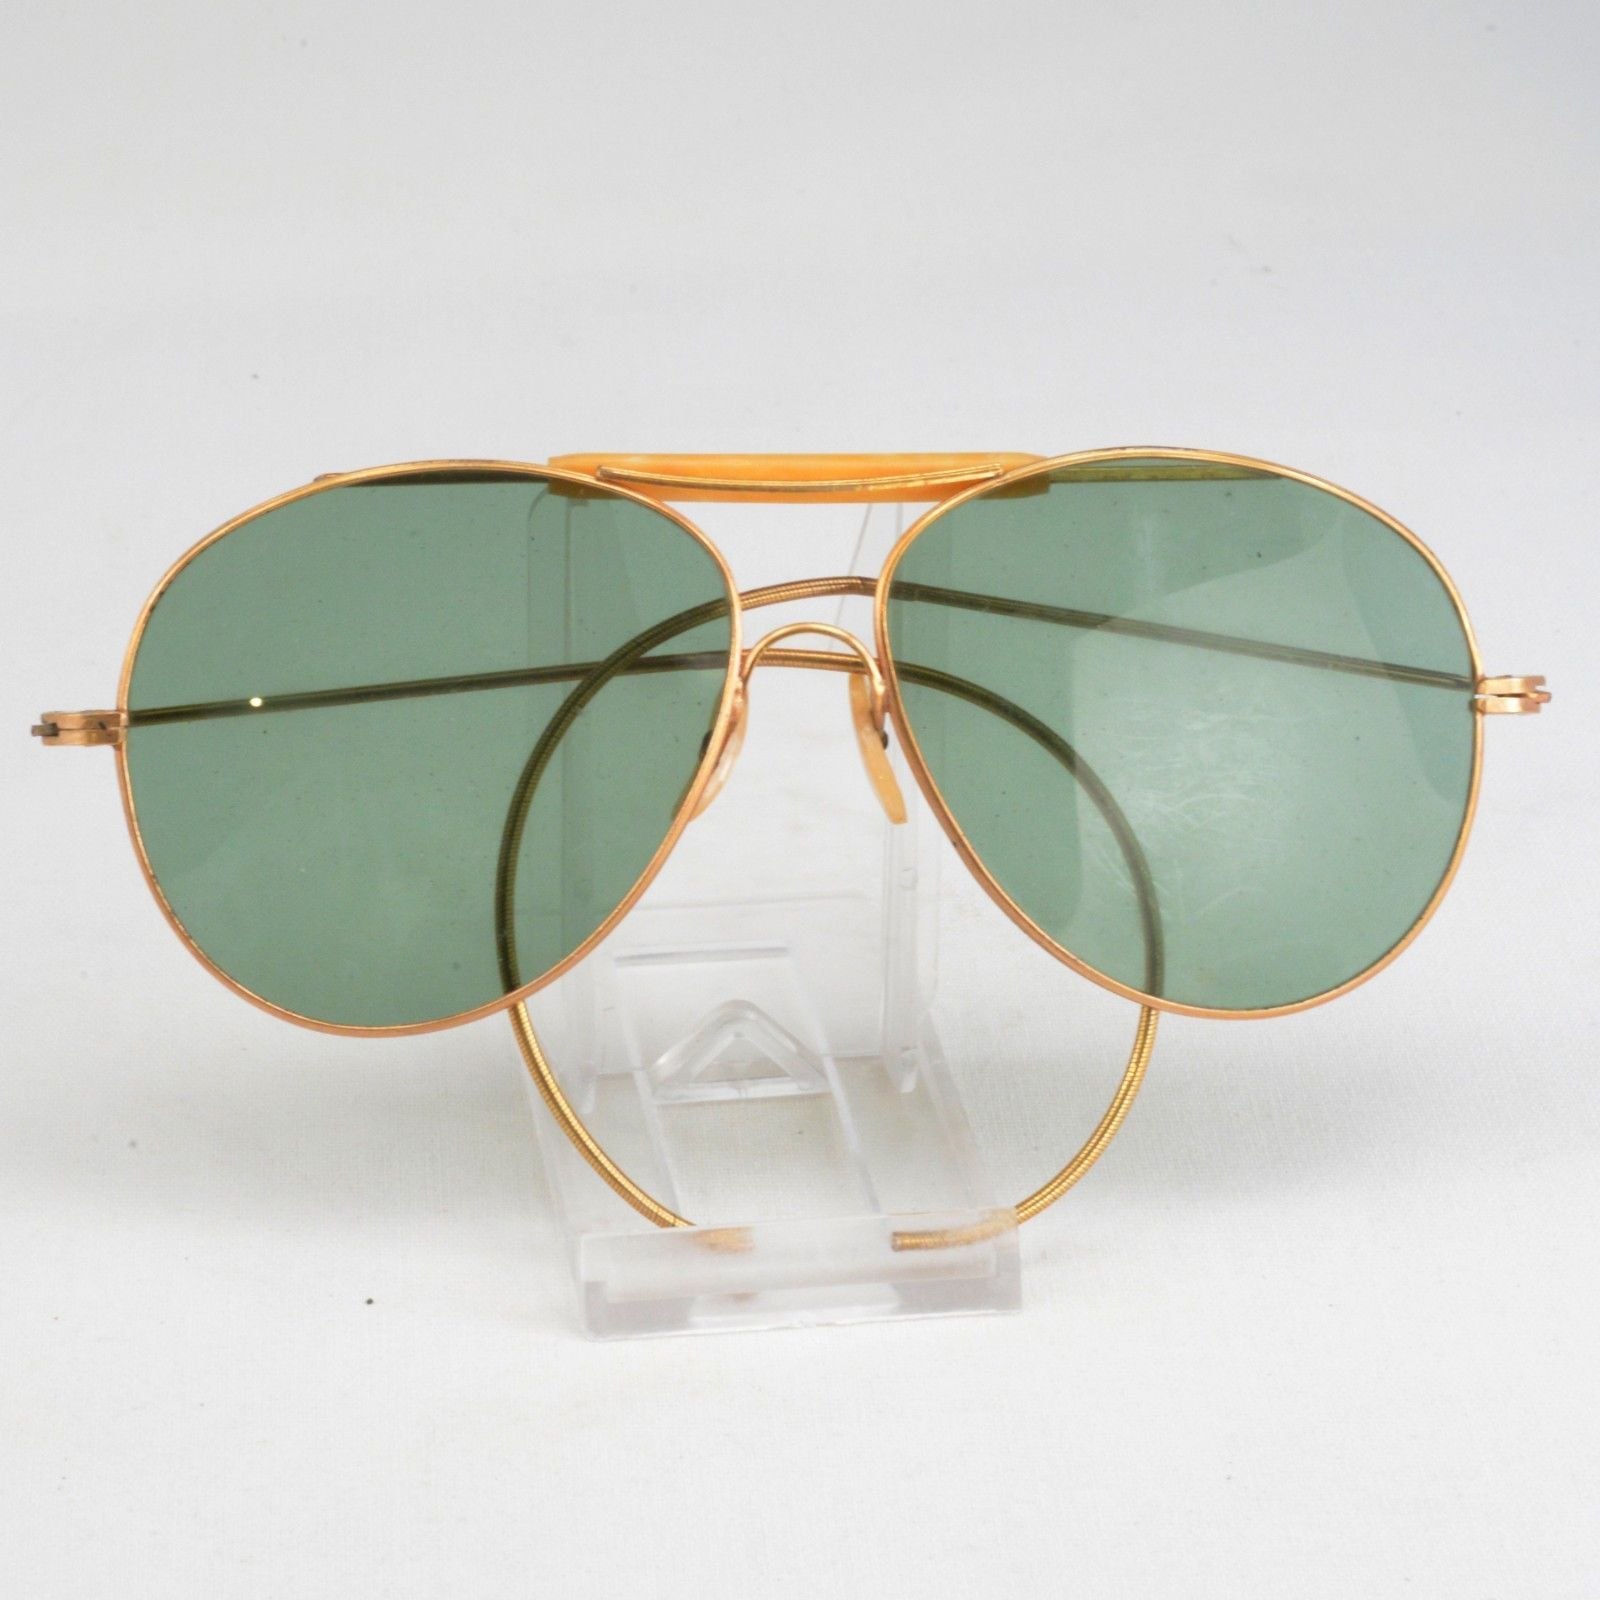 83b3dd94b8 Vintage Goldtone Retro Aviator or Shooting Sunglasses Reto Midcentury ID  942